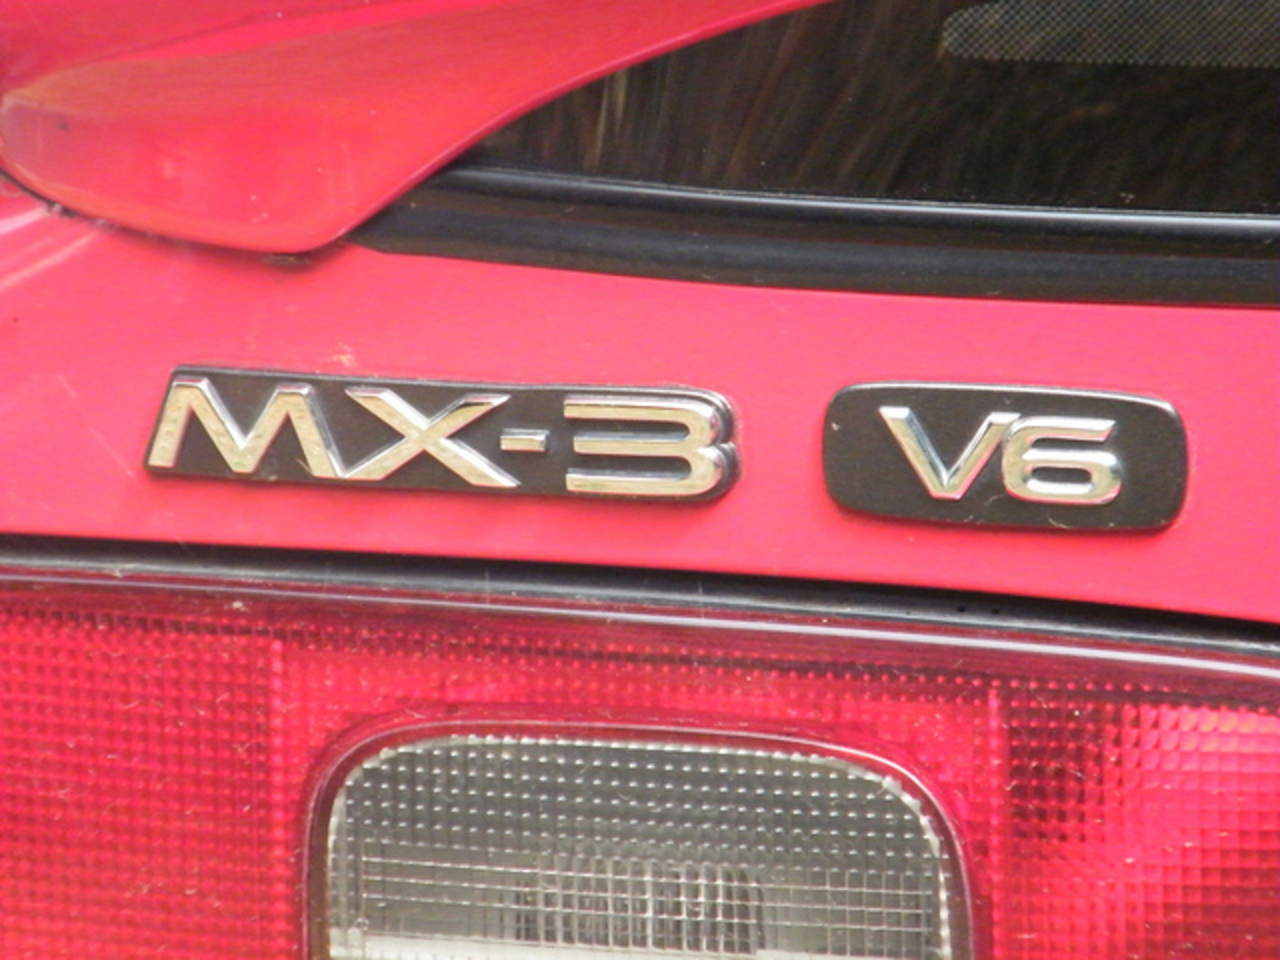 1997 Mazda MX-3 V6 (3) | Flickr - Photo Sharing!